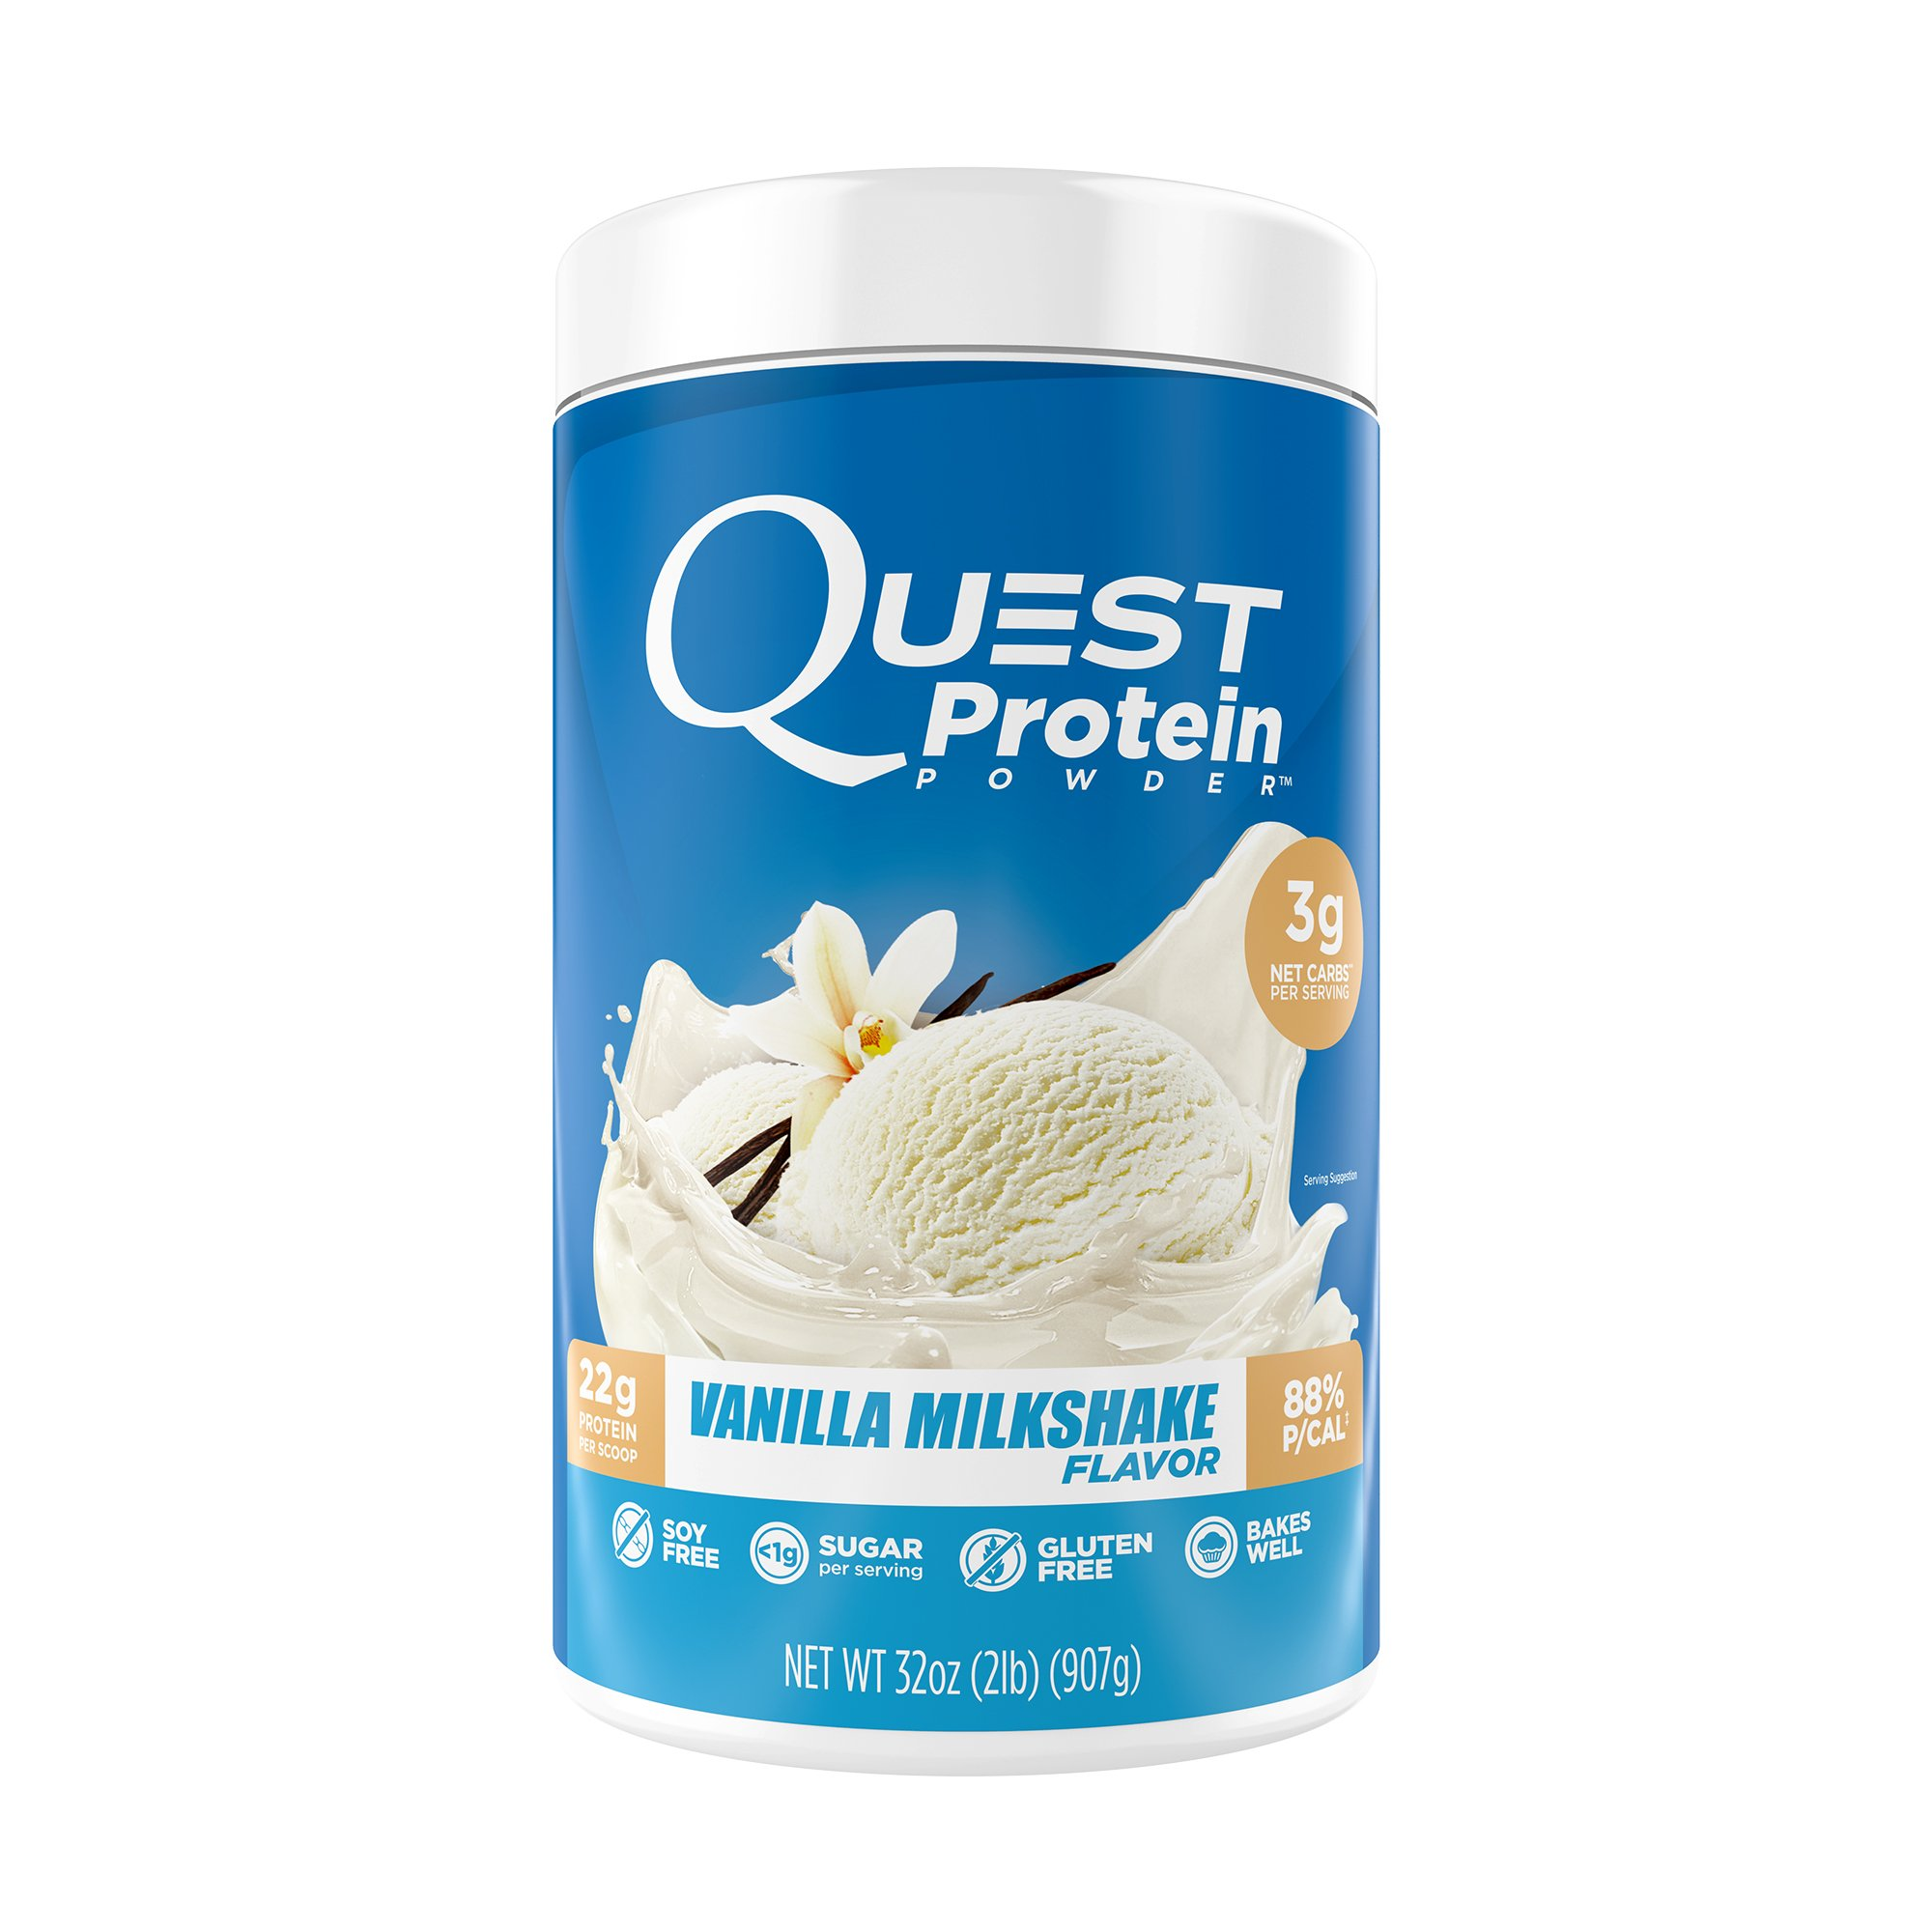 Quest Nutrition Protein Powder, Vanilla Milkshake, 22g Protein, 3g Net Carbs, 88% P/Cals, 2lb Tub, High Protein, Low Carb, Gluten Free, Soy Free, Packaging May Vary